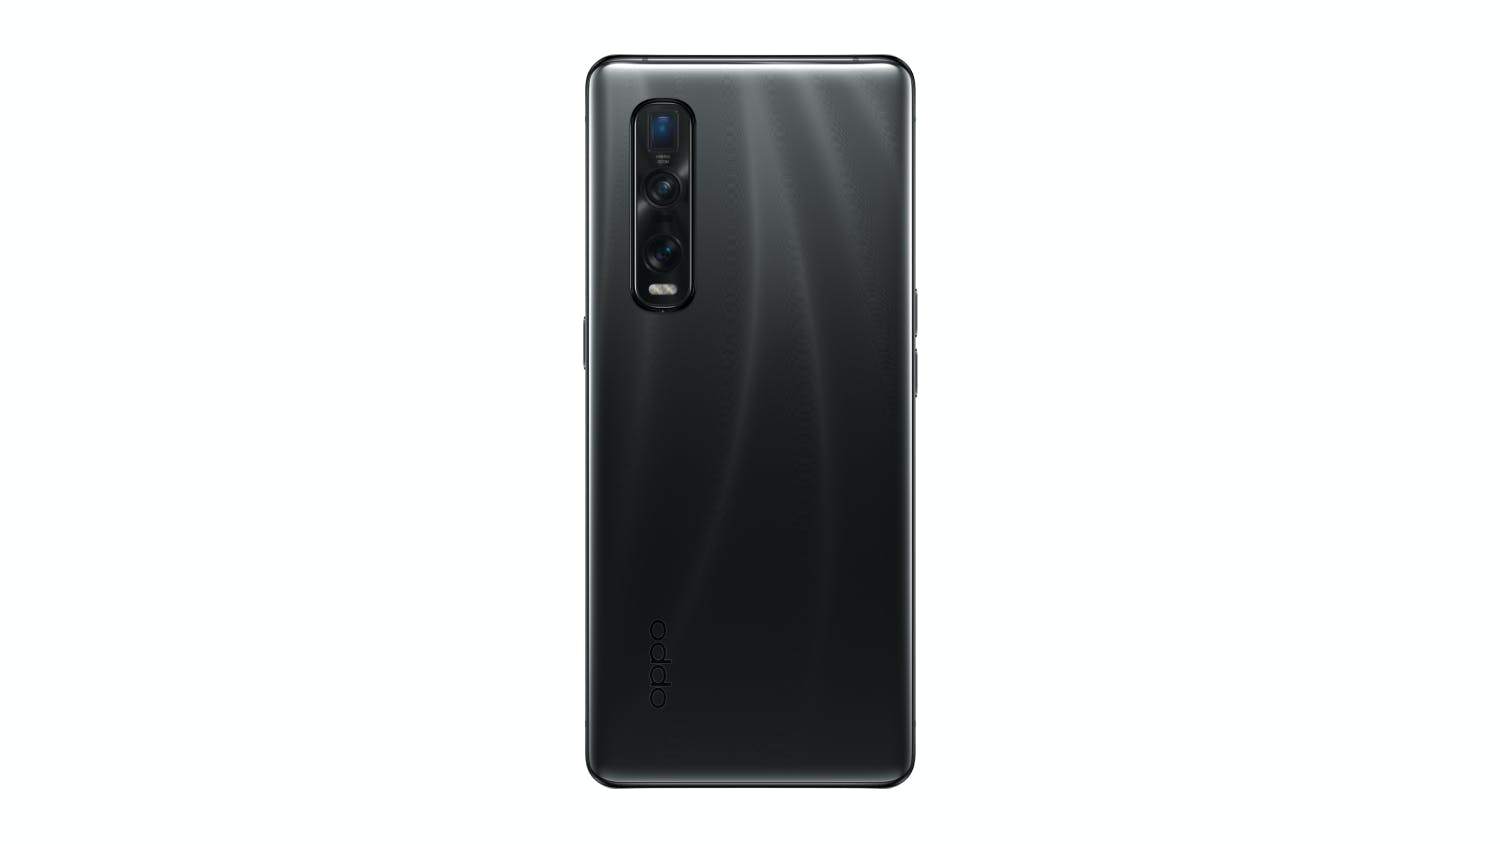 Spark OPPO Find X2 Pro Smartphone - Black